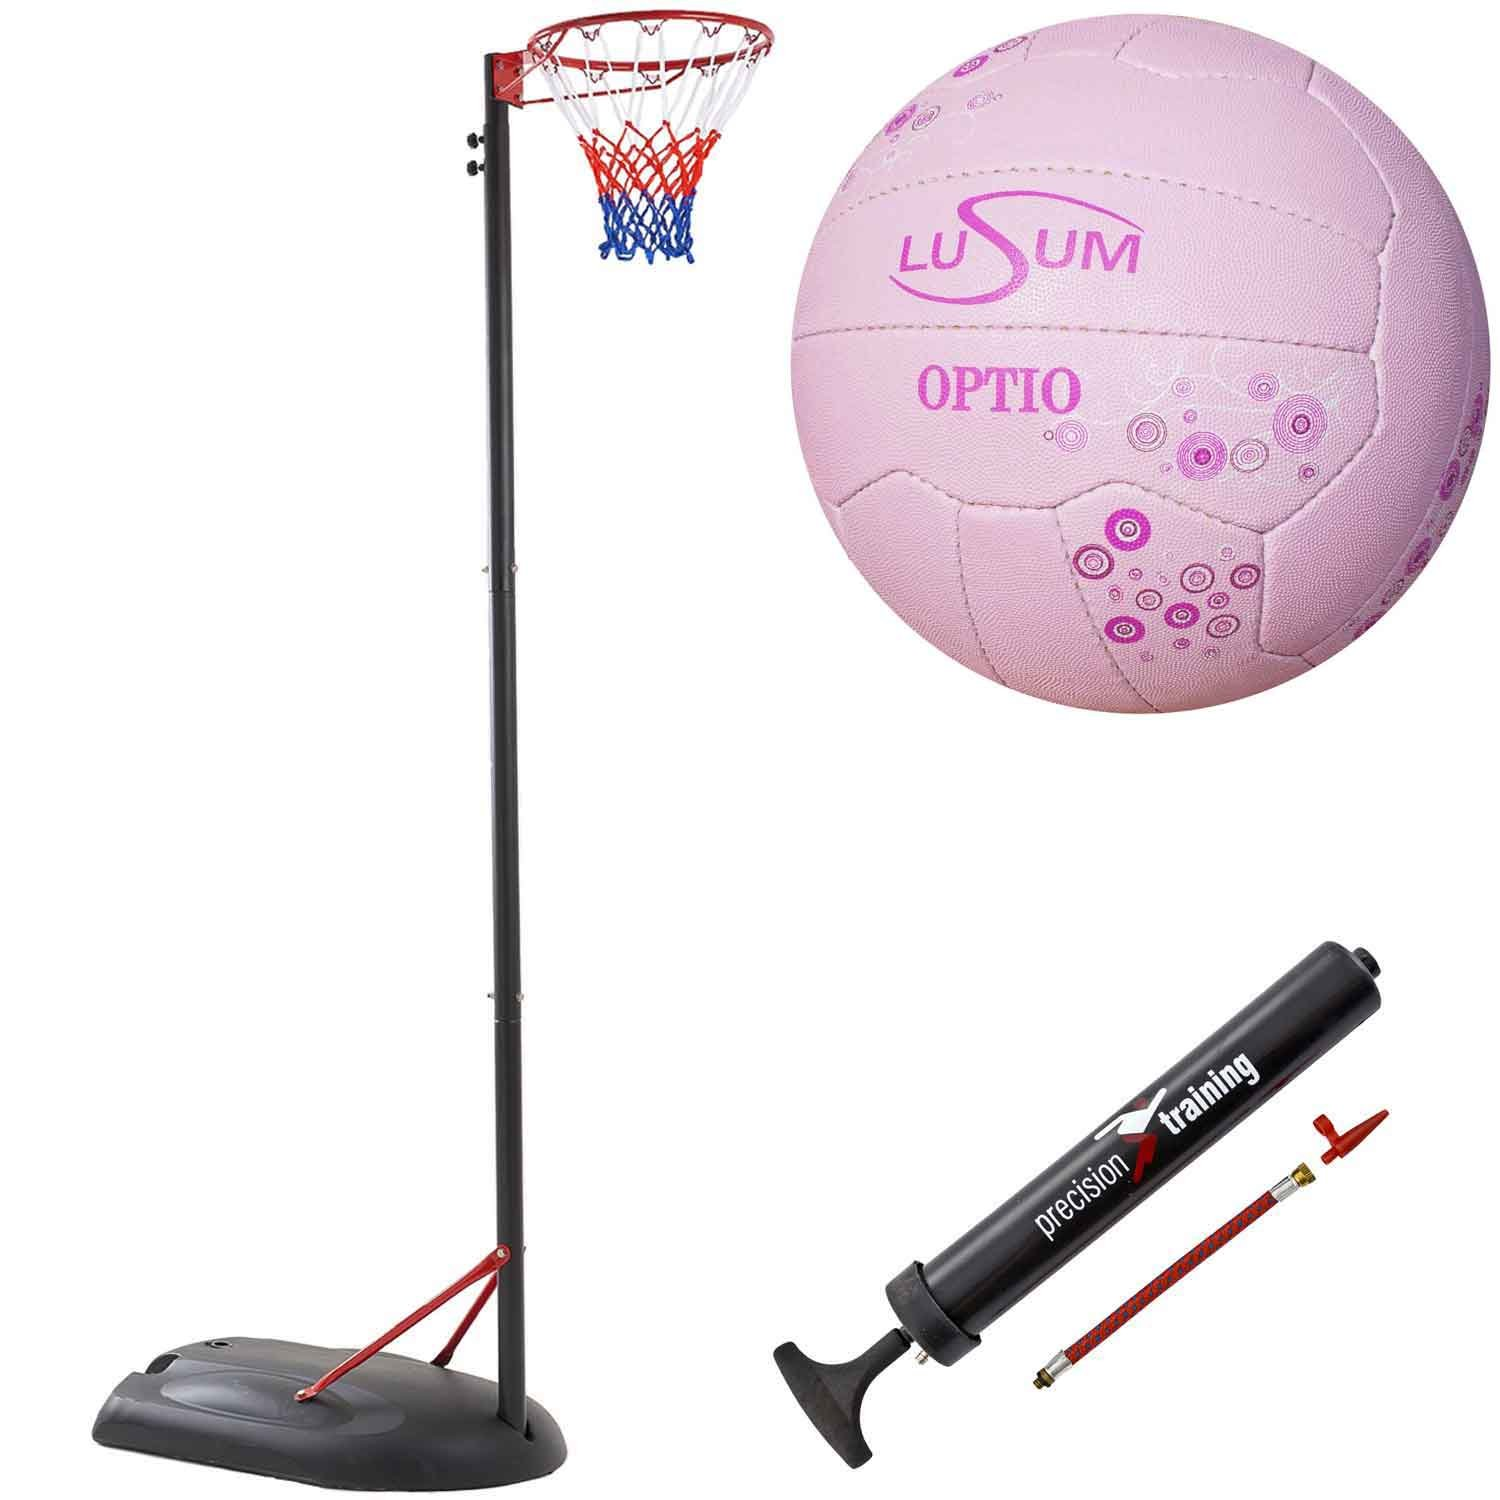 Bee-Ball Adjustable Netball Post Package. Netball Hoop, Premium Lusum Netball and Pump (10 Foot/3.05 Meters, INF Approved Height) Big Game Hunters 88101